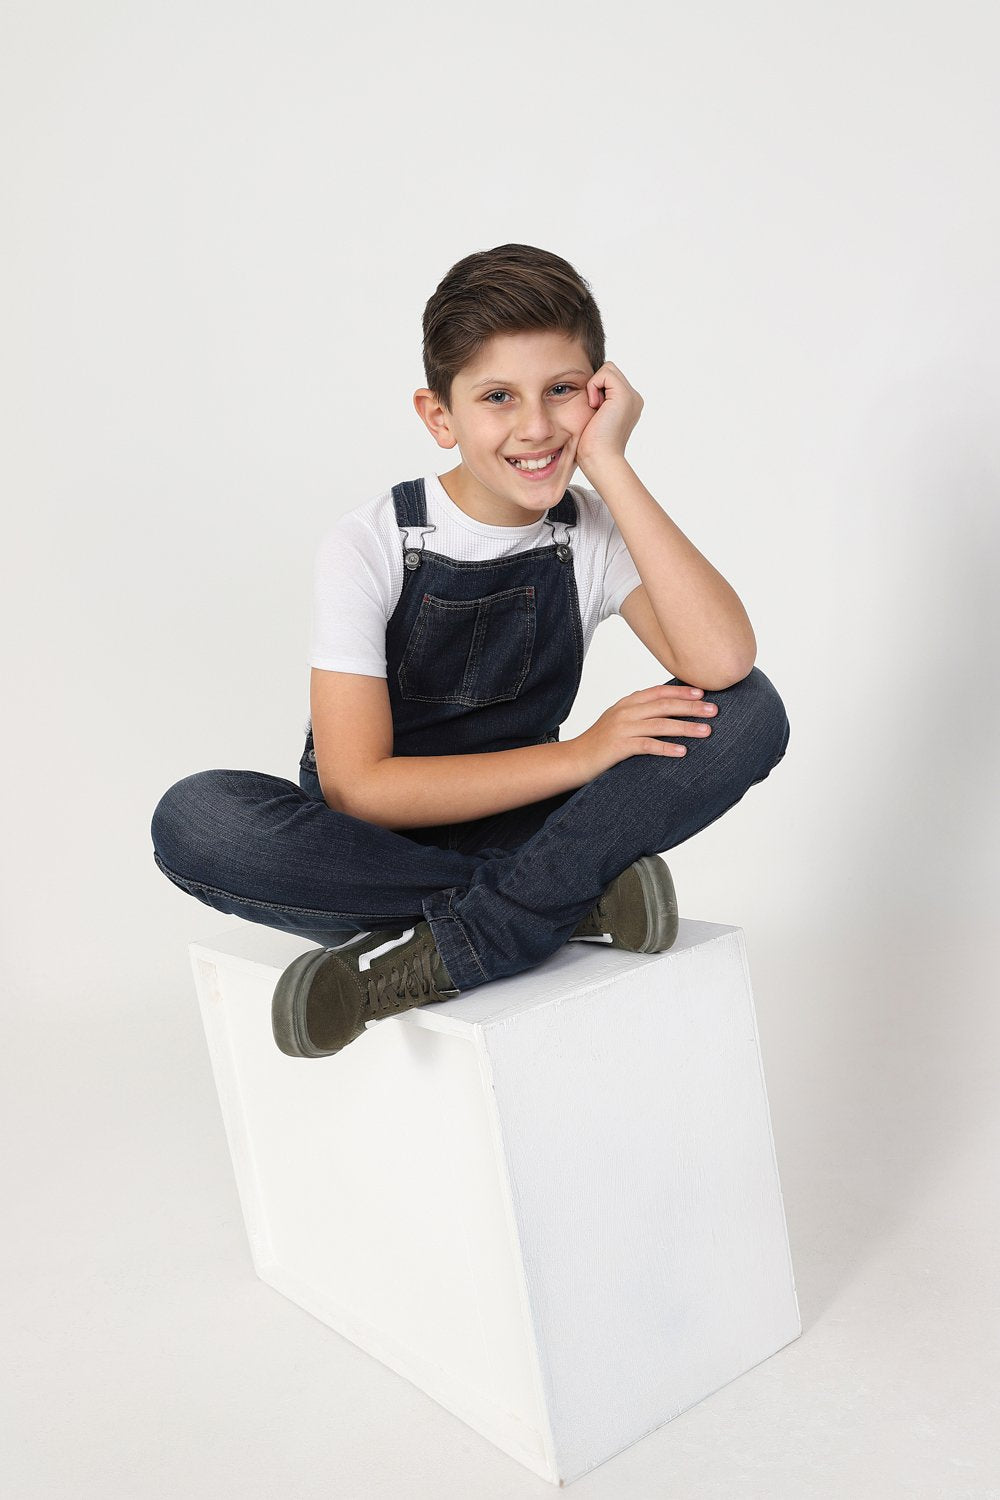 Smiling boy, cross-legged on box wearing modern, machine washable dungarees.